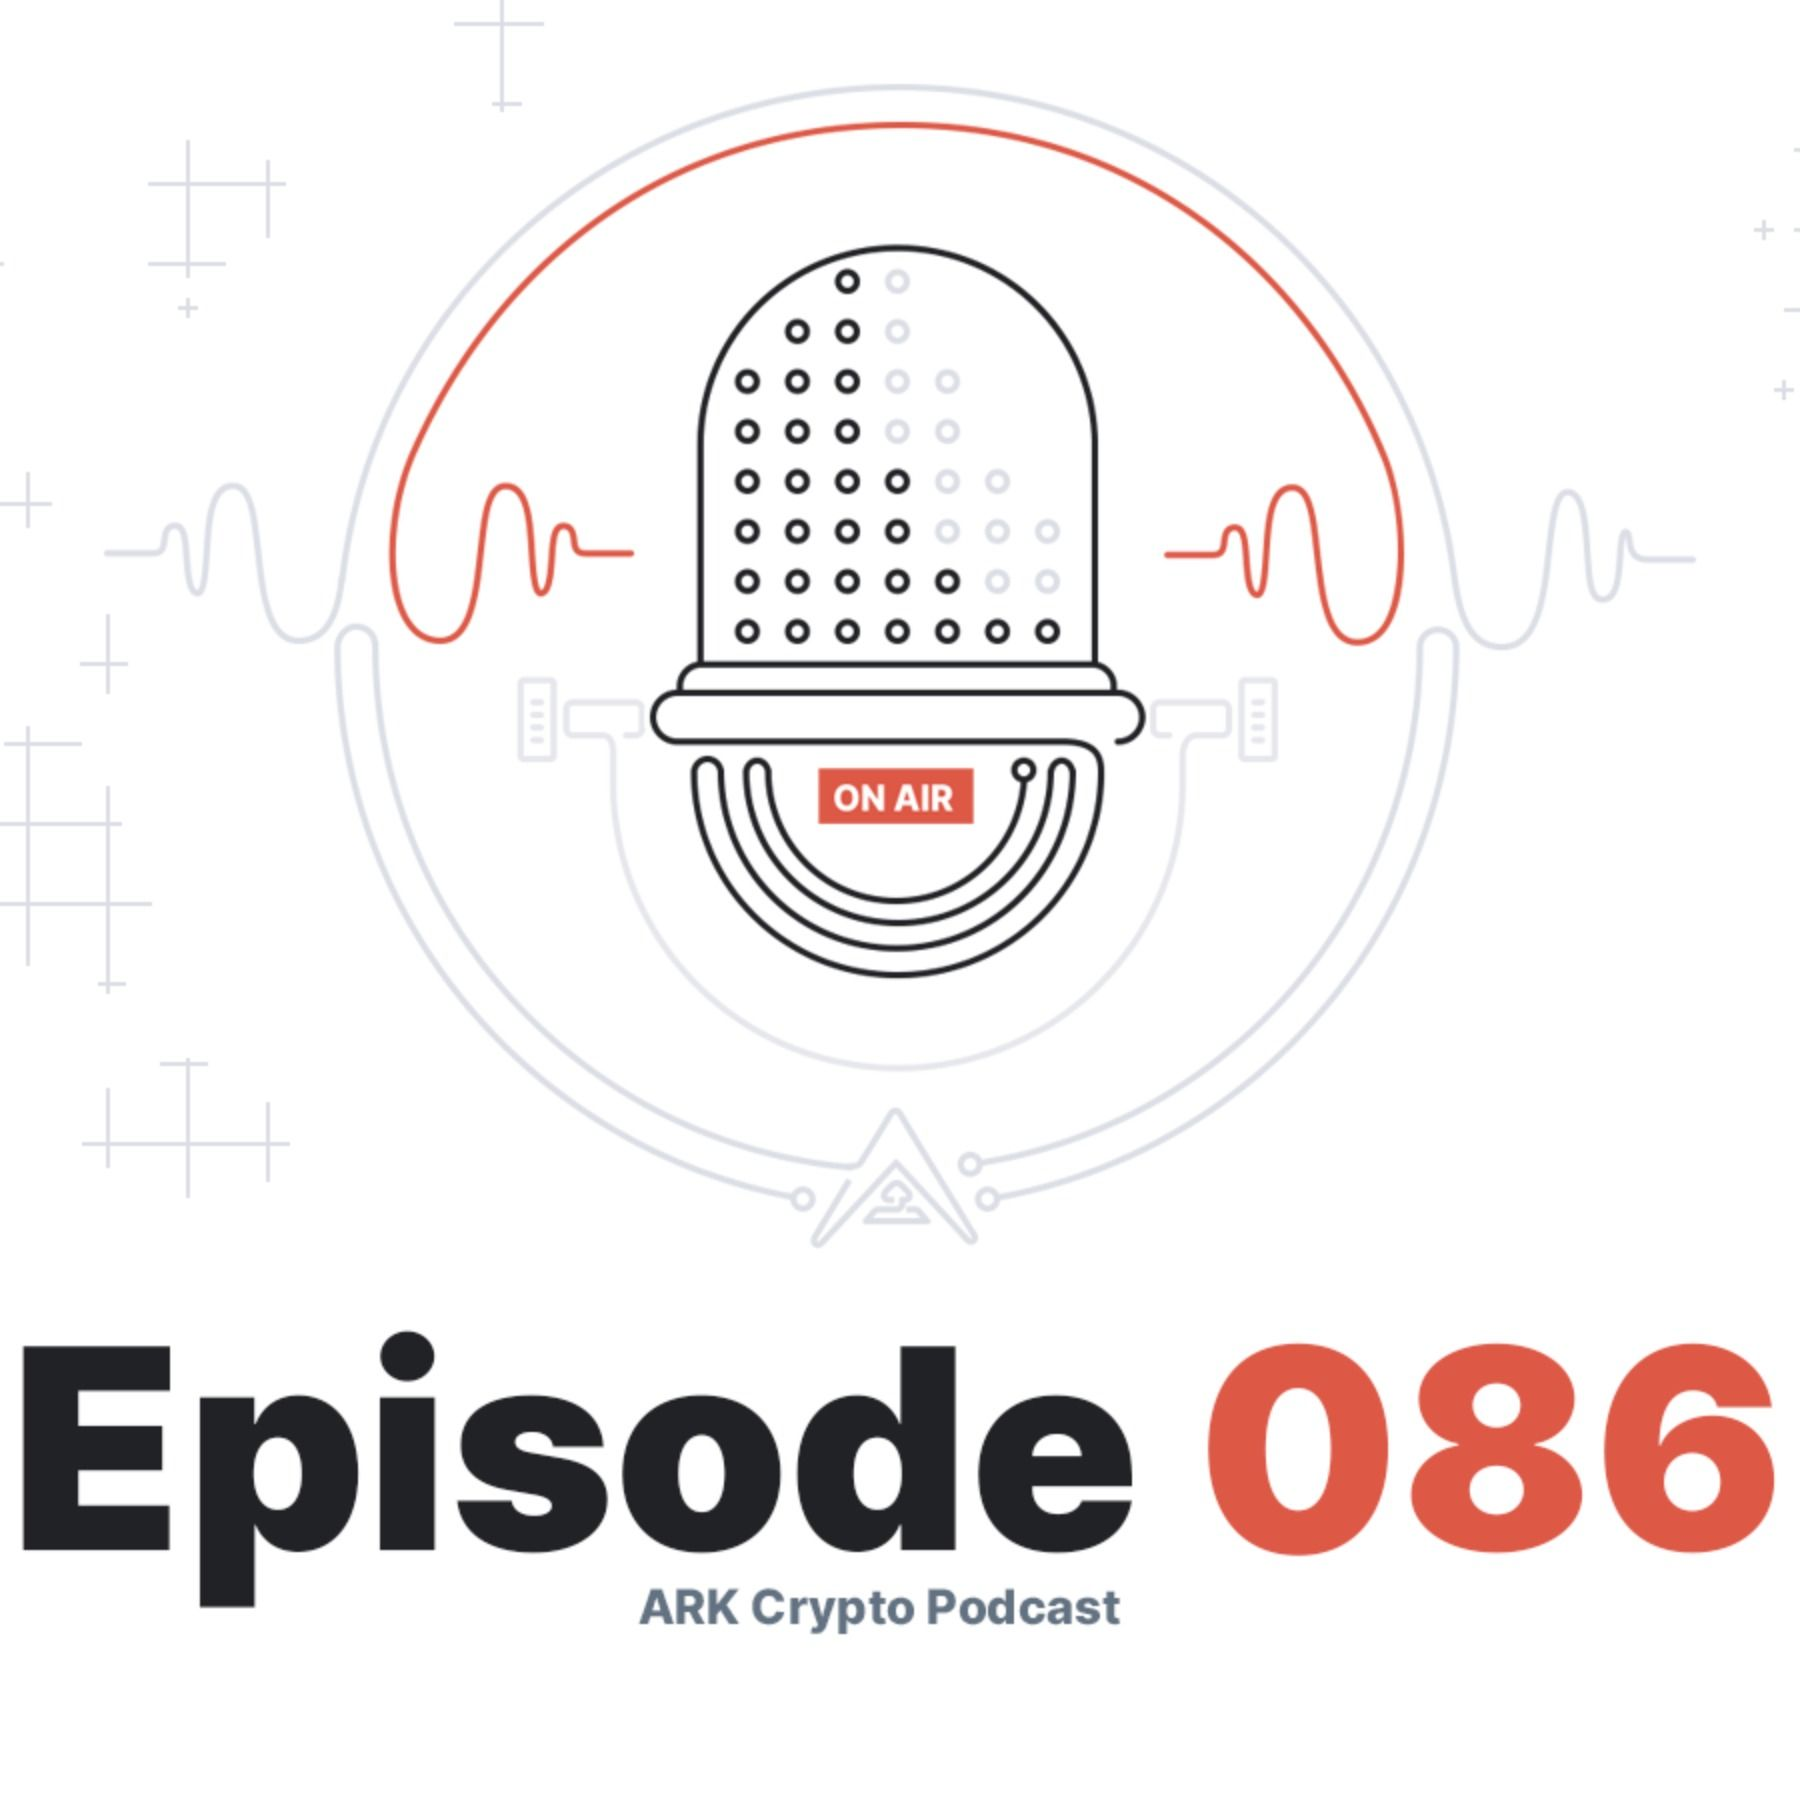 ARK Core Values Deep Dive, Support - ARK Crypto Podcast #086